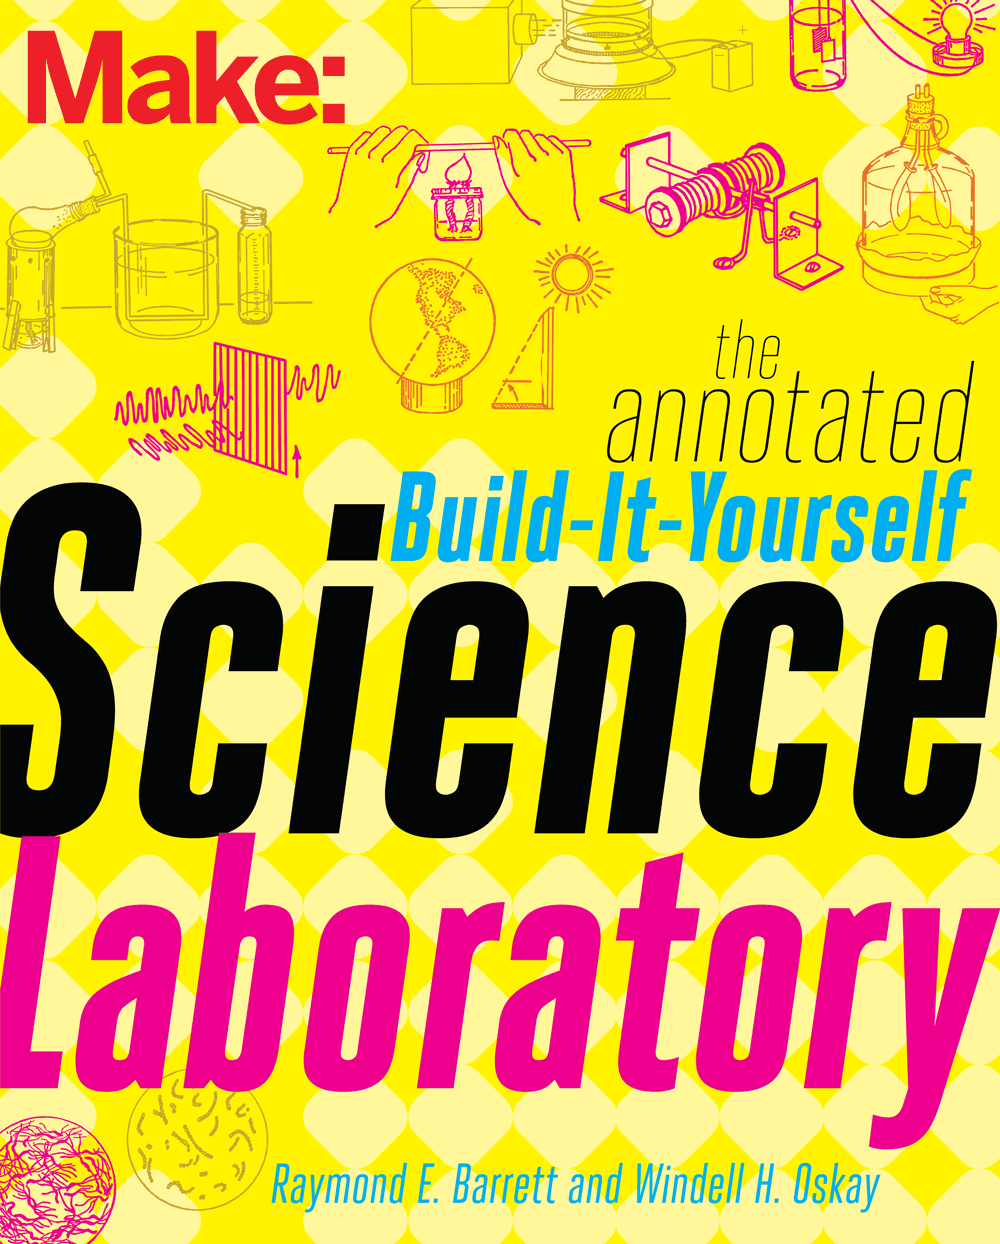 The Annotated Build It Yourself Science Laboratory